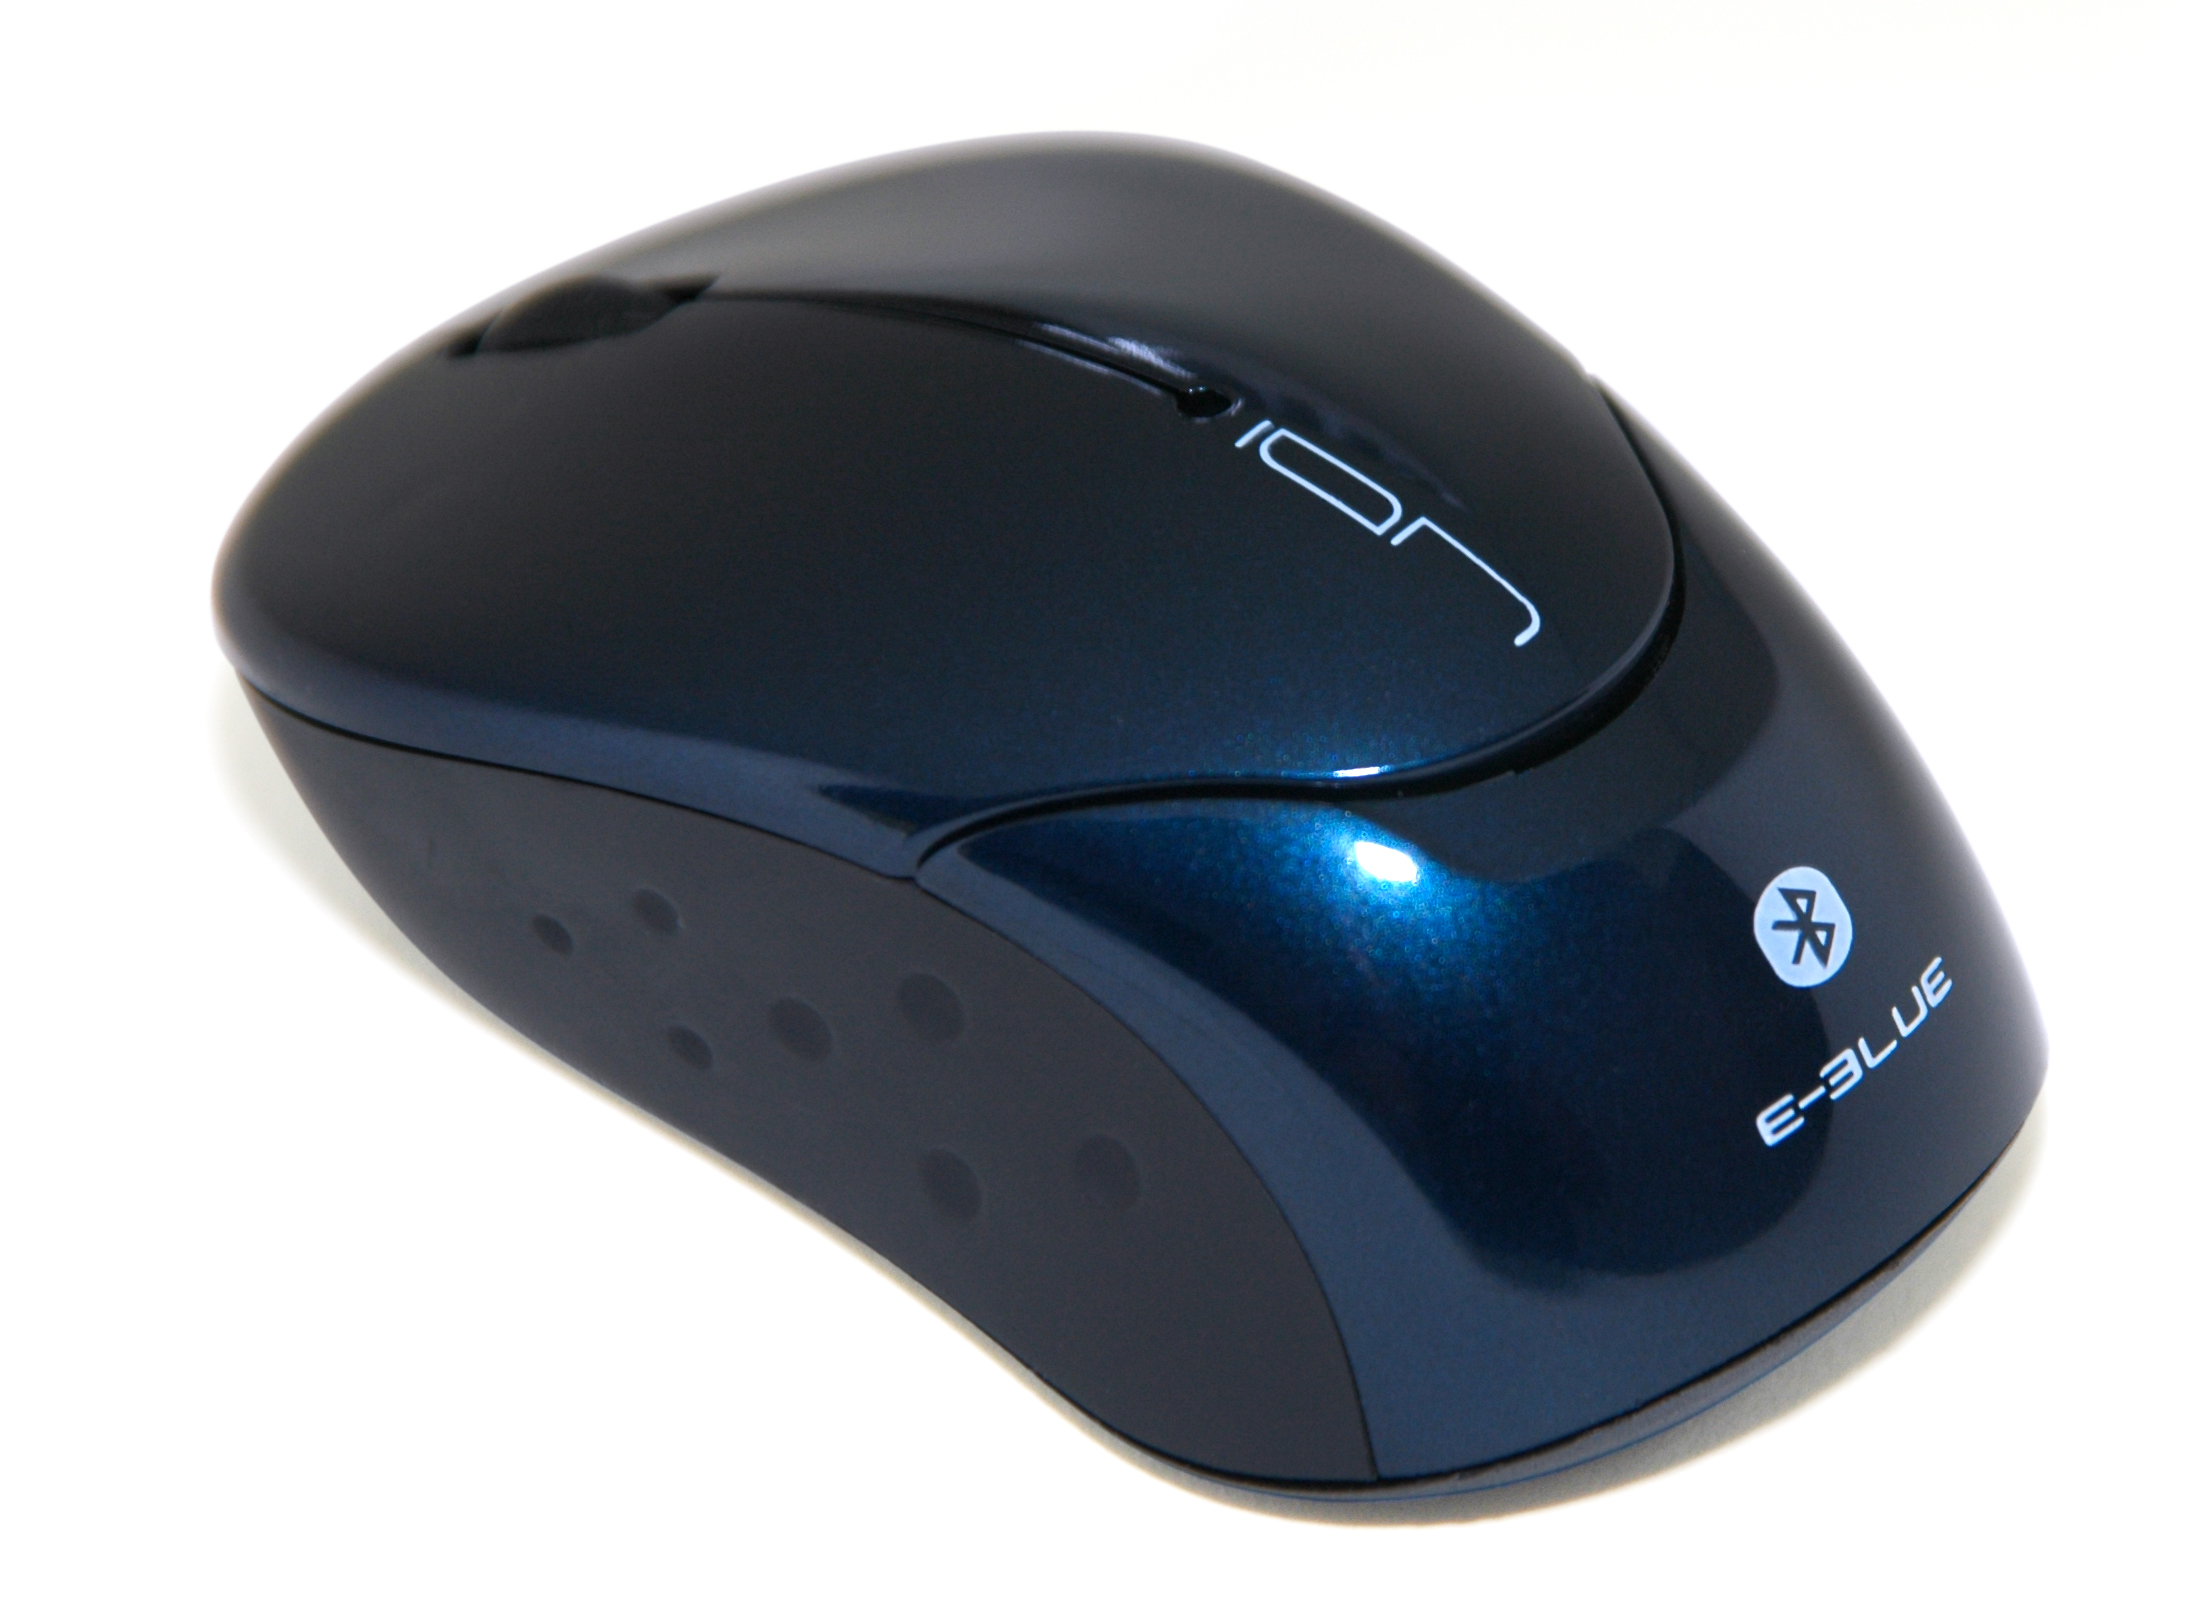 ION Bluetooth wireless mouse